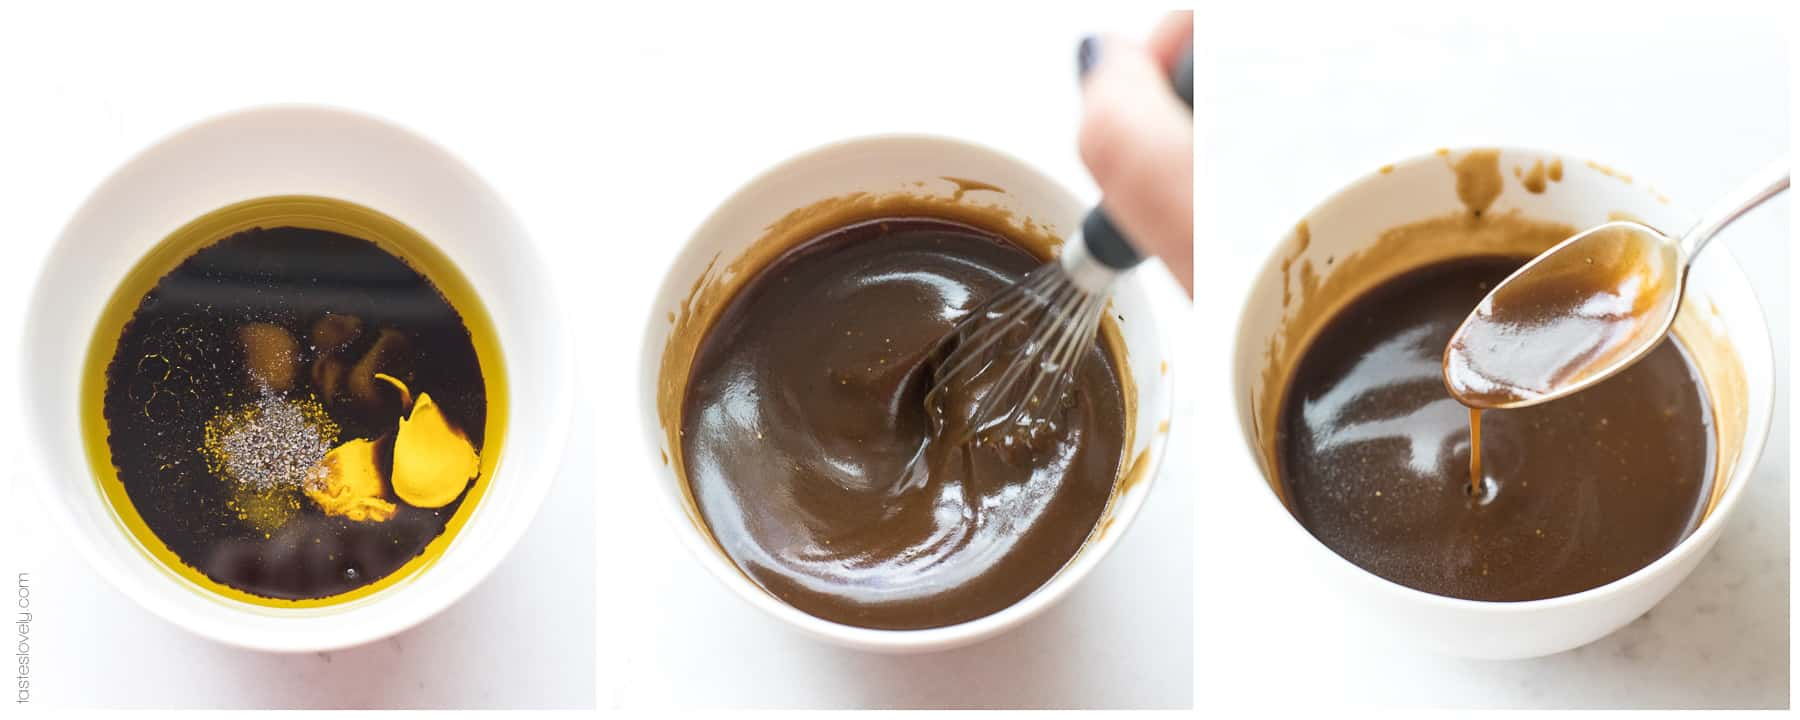 steps of making a balsamic vinaigrette salad dressing in a bowl